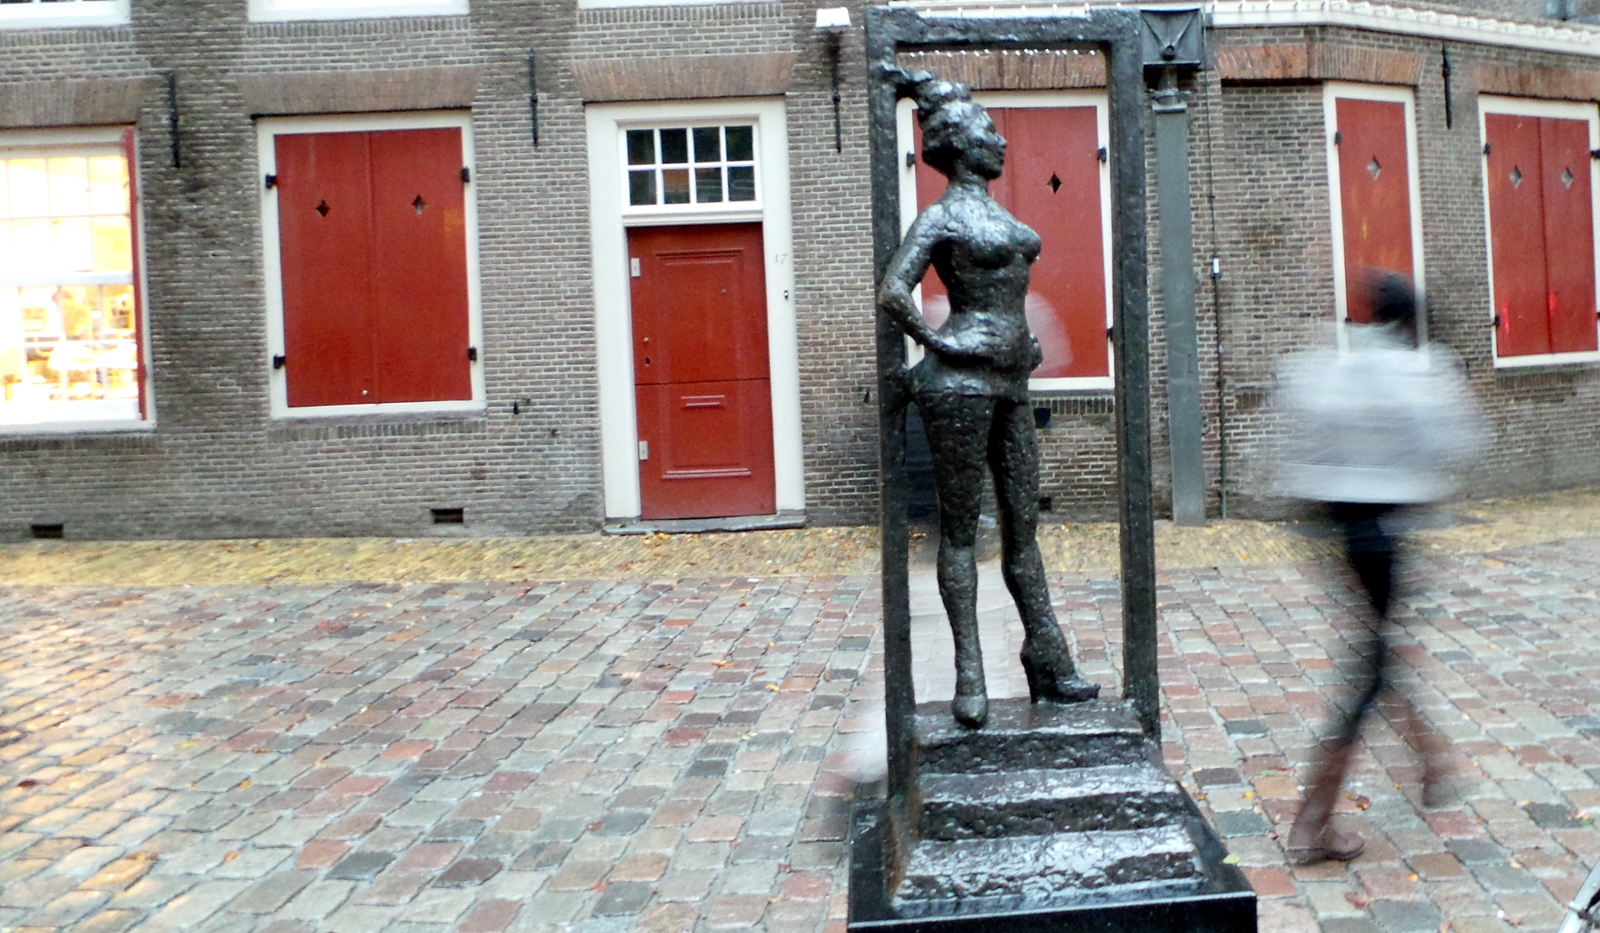 Titled Belle , the statue depicts a full-breasted woman who, feet apart and standing in a doorway at the top of a small set of steps, looks self-assuredly into the world. The statue is meant to show respect to the millions of people around the world who earn their money in prostitution.